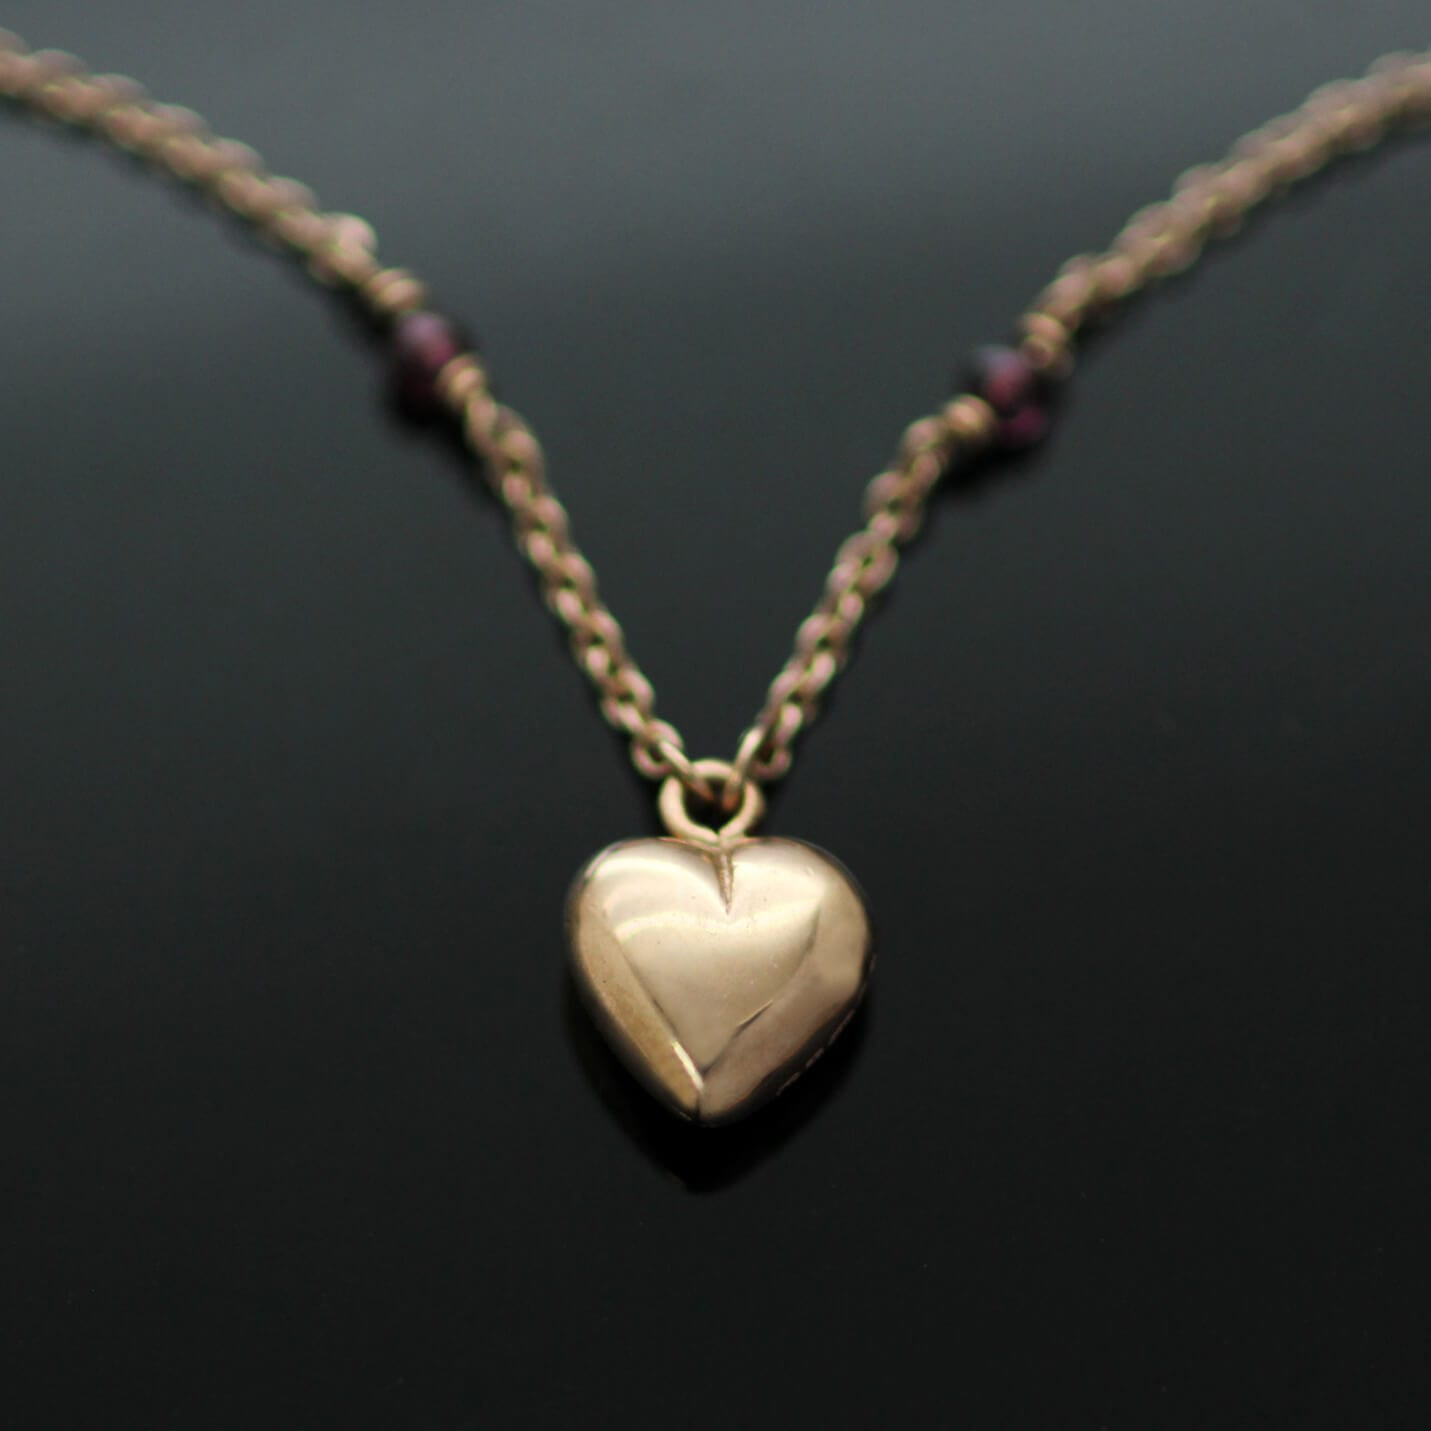 Solid Rose Gold necklace handmade Heart pendant Garnet gemstone beads